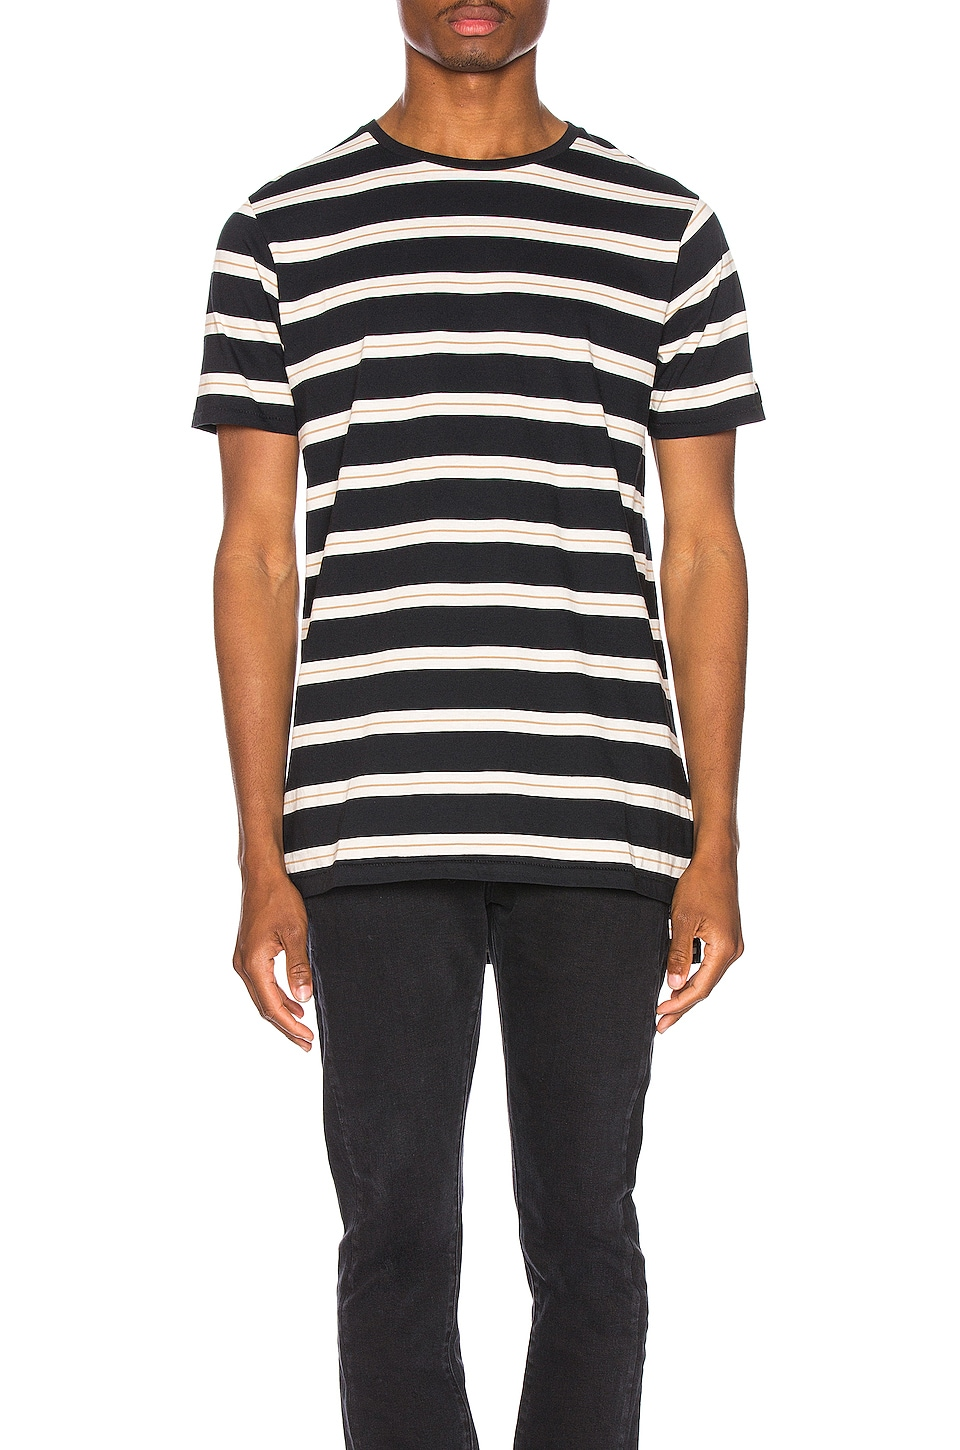 Zanerobe Stripe Flintlock Tee in Black & White